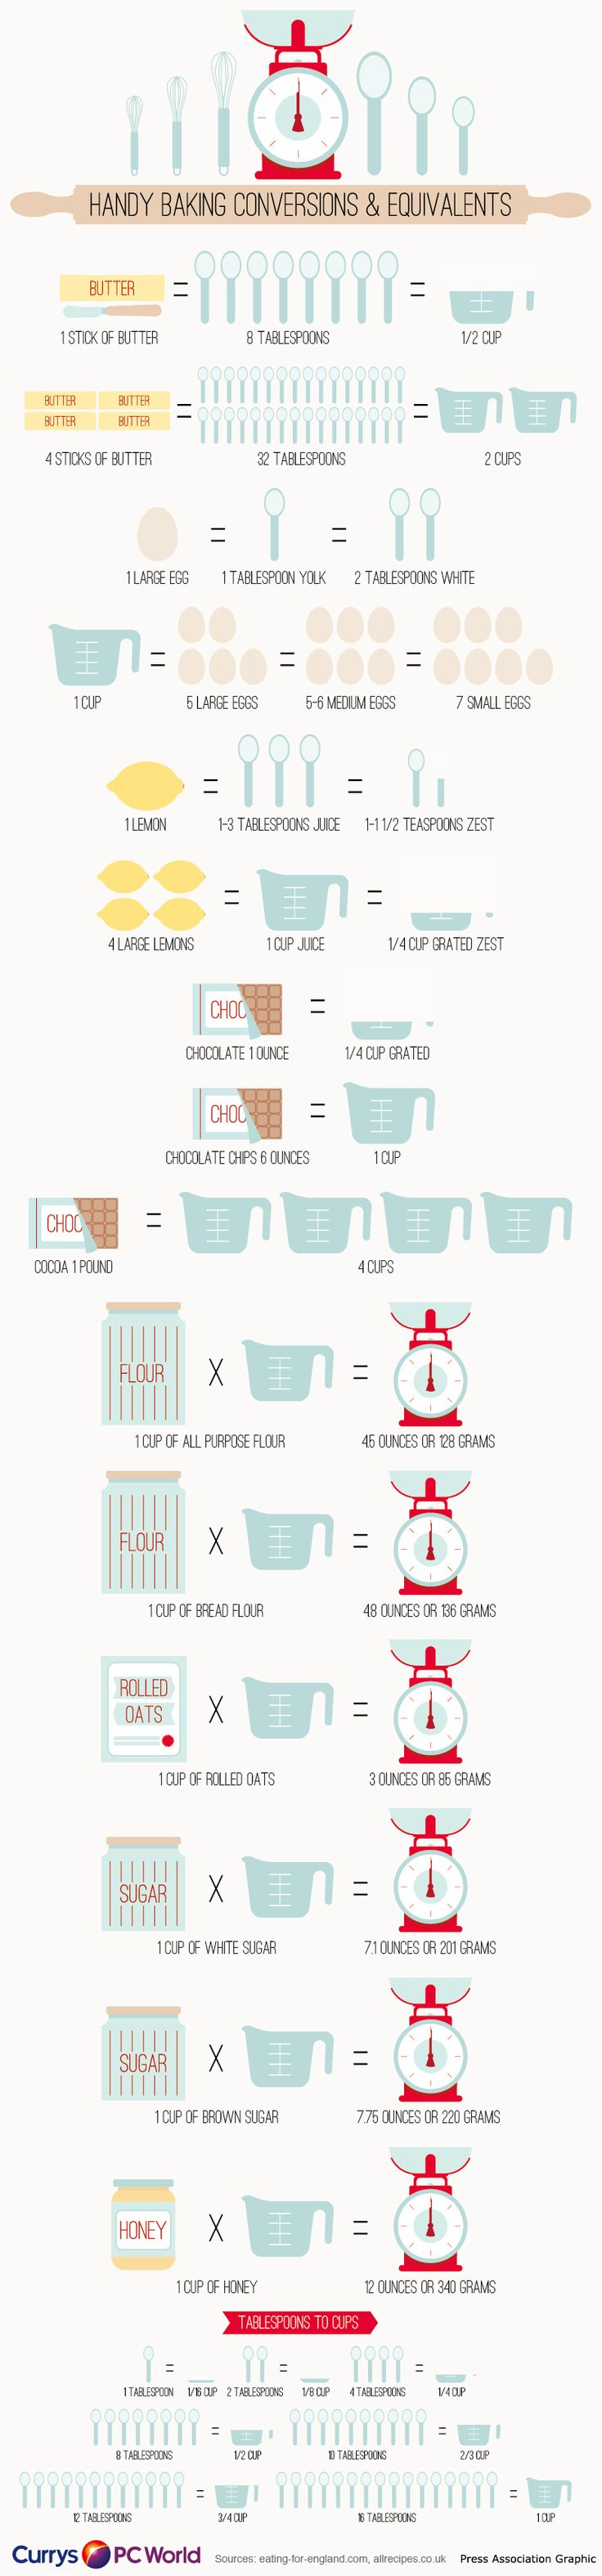 This fun infographic charts handy baking conversions and equivalents. Would look great printed out & put on your kitchen wall.